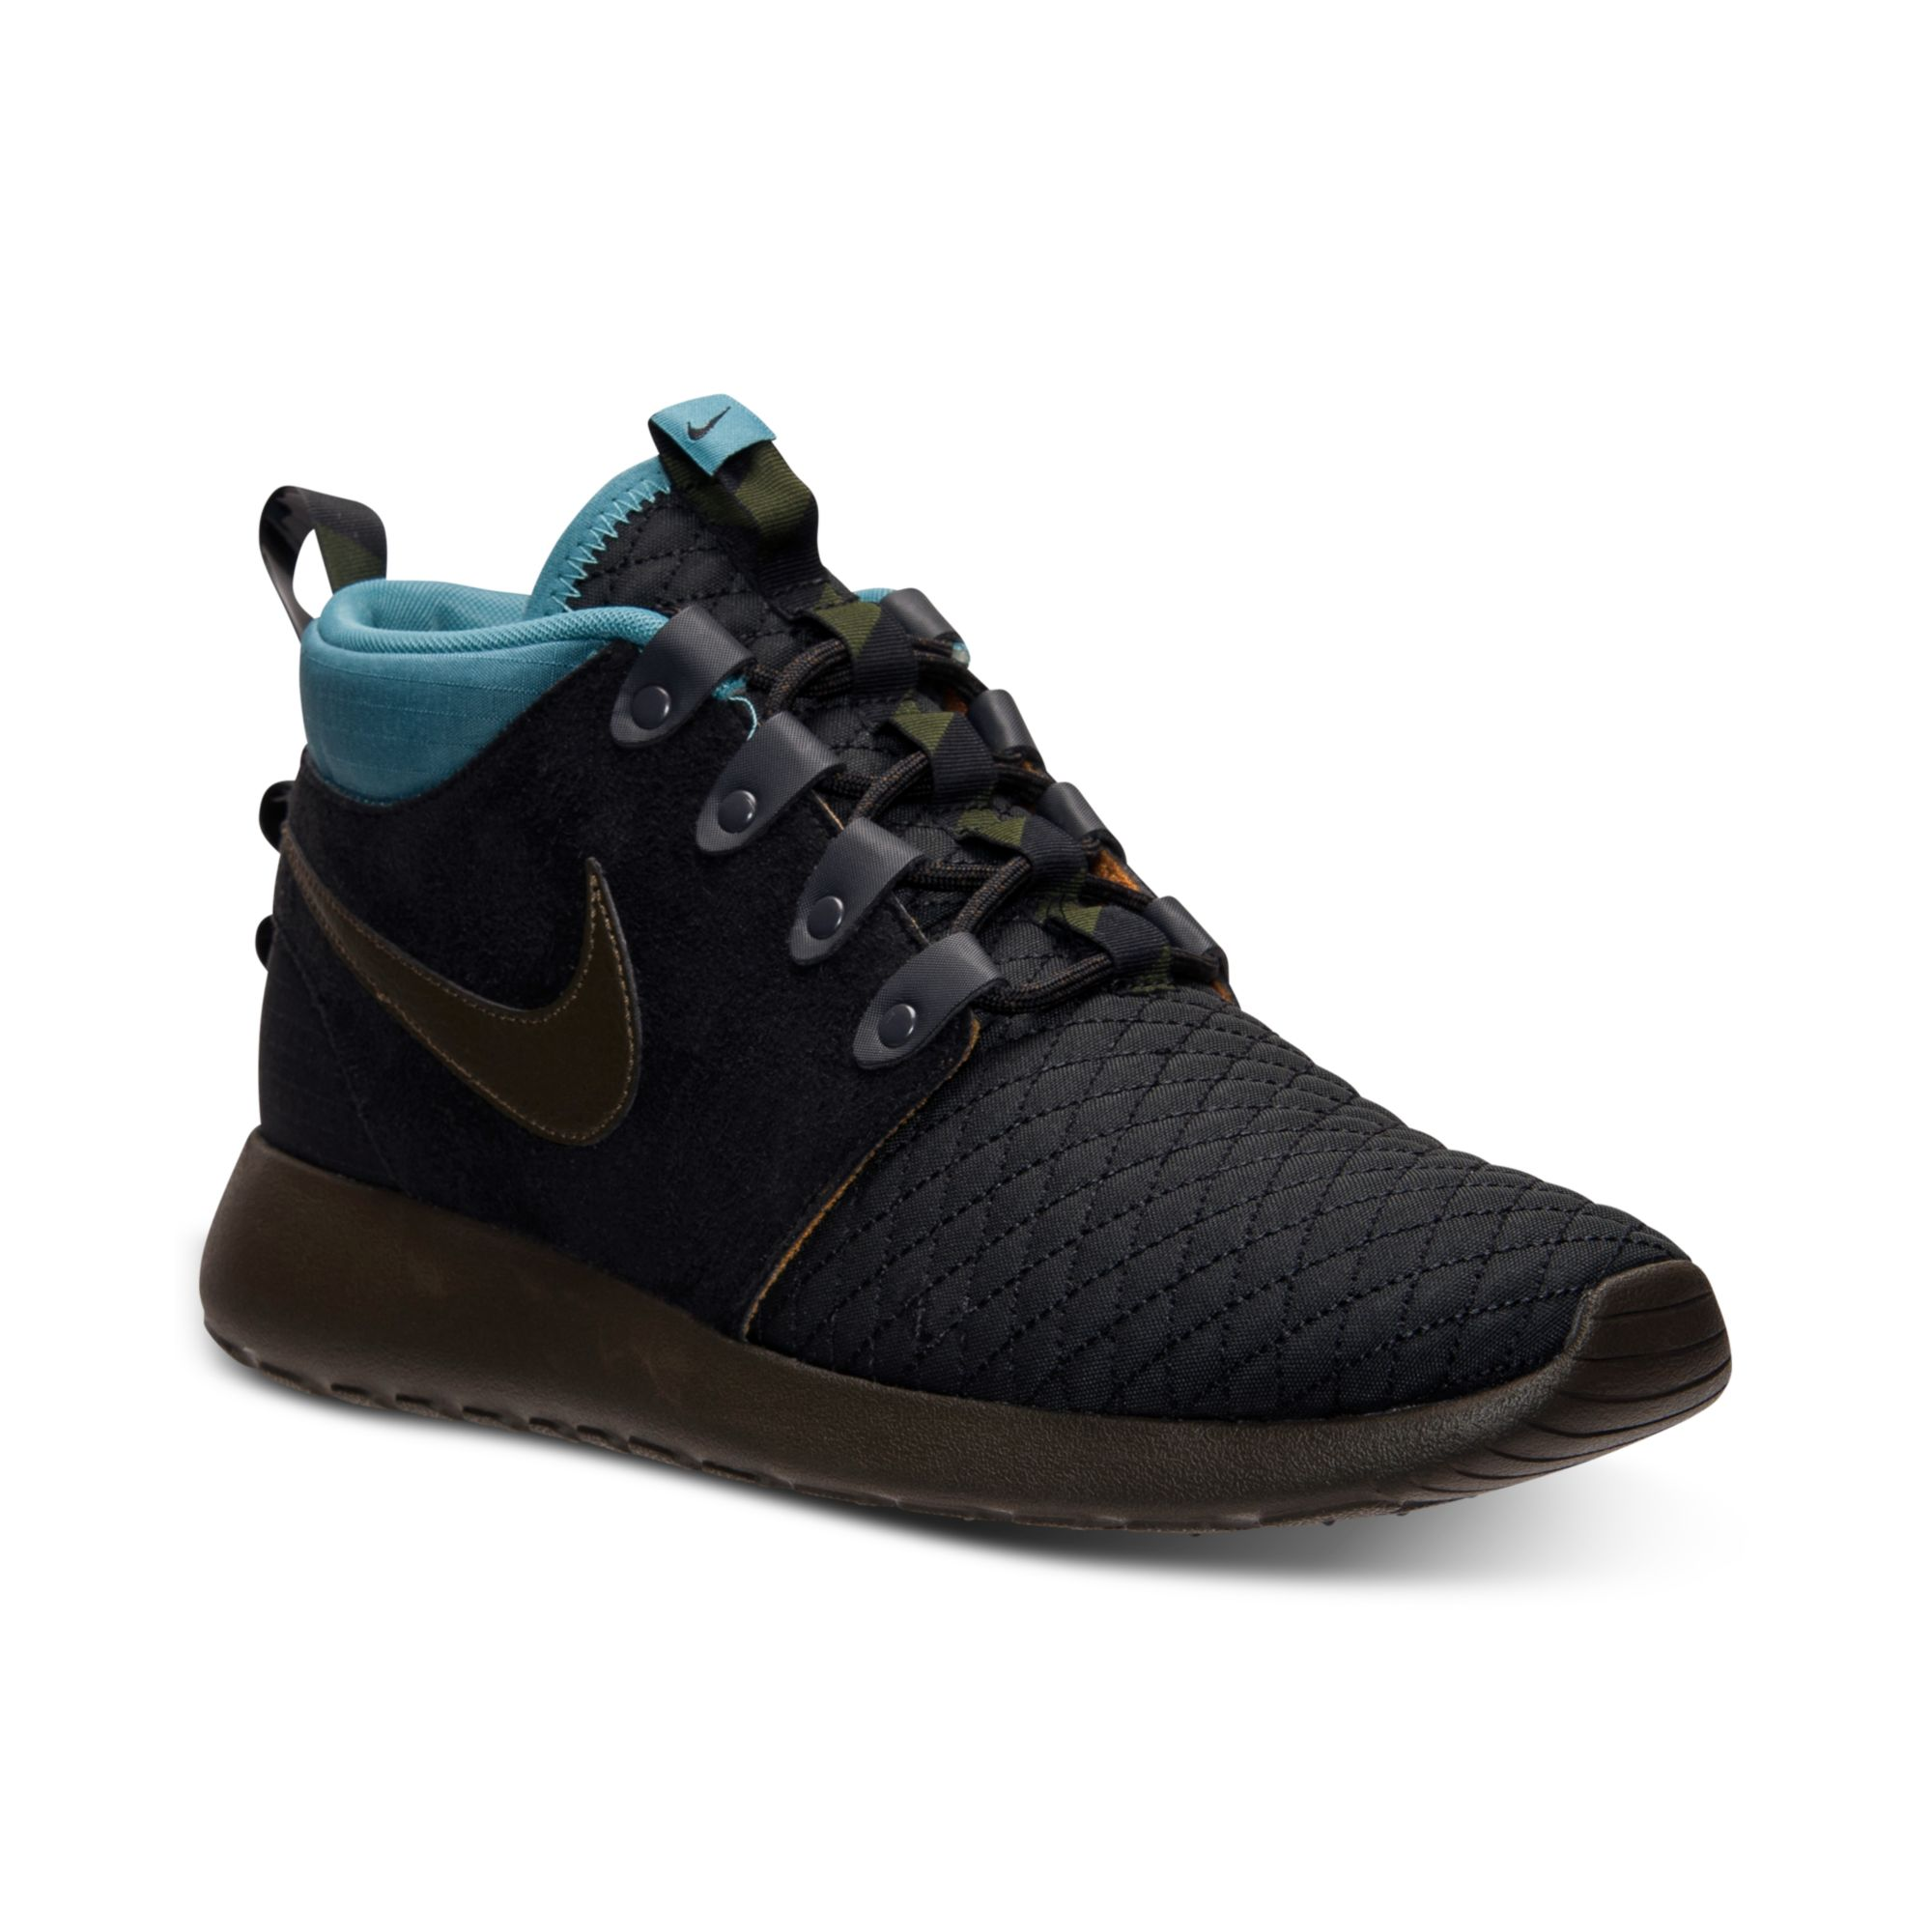 Mens Nike Roshe Run Mid Winter Casual Outdoor Shoes